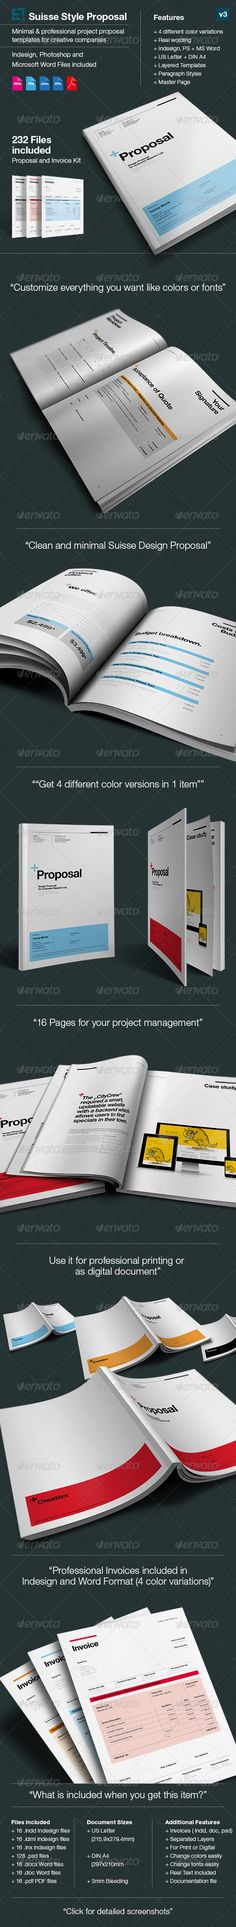 Proposal Event proposal, Proposal templates and Proposals - event proposal template word